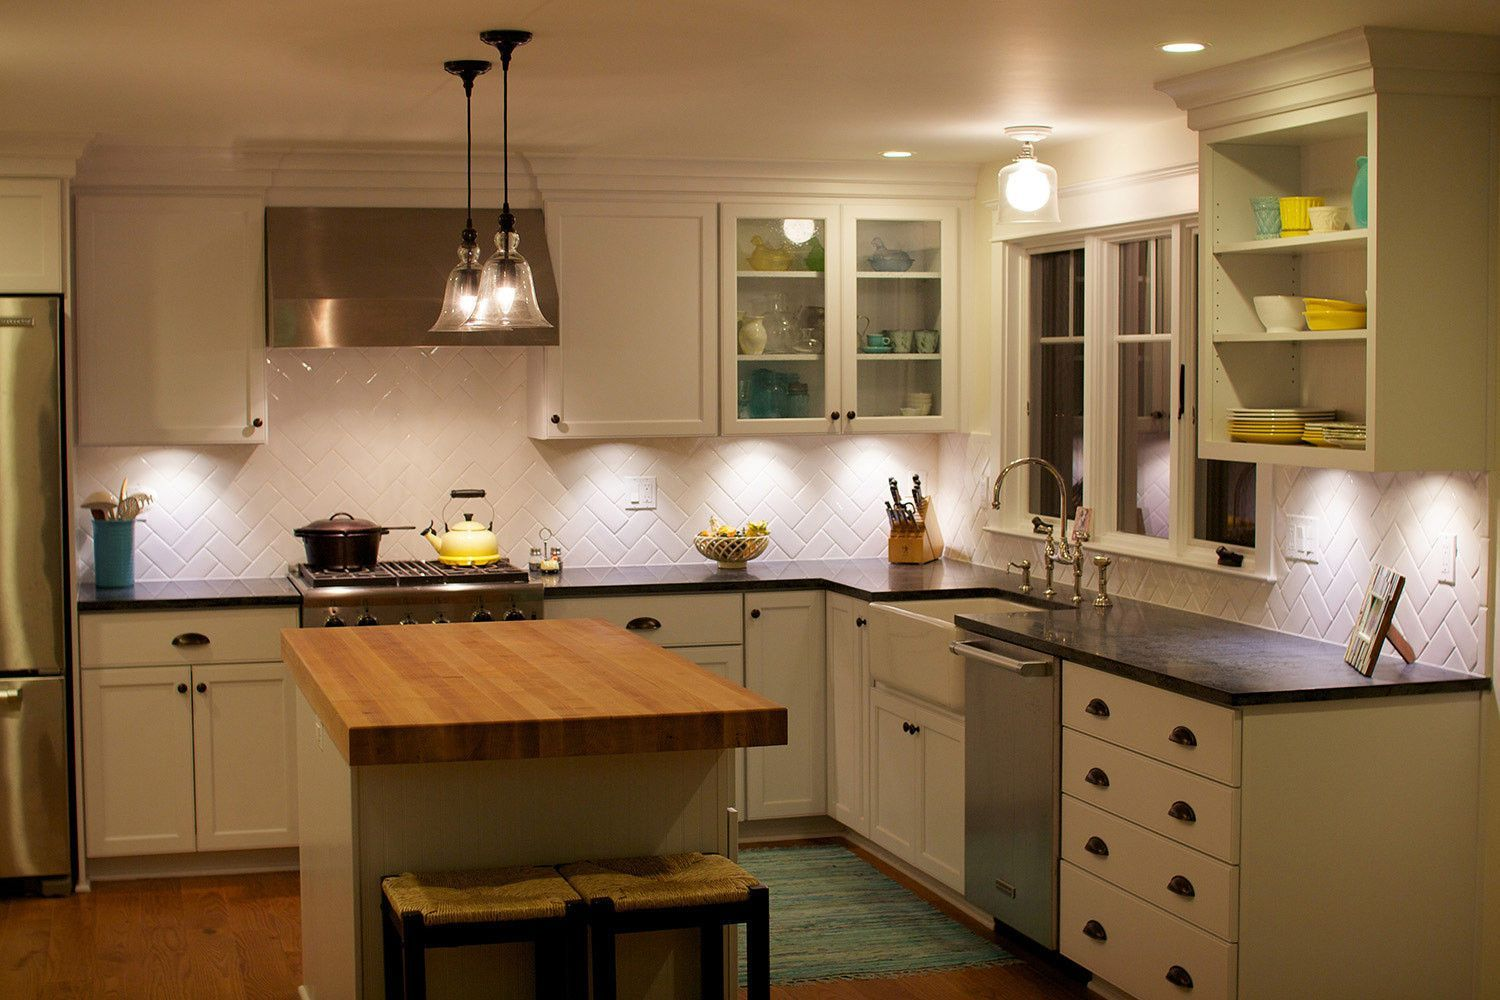 Pin By Leslie W On Kitchen Ideas Kitchen Lighting Layout